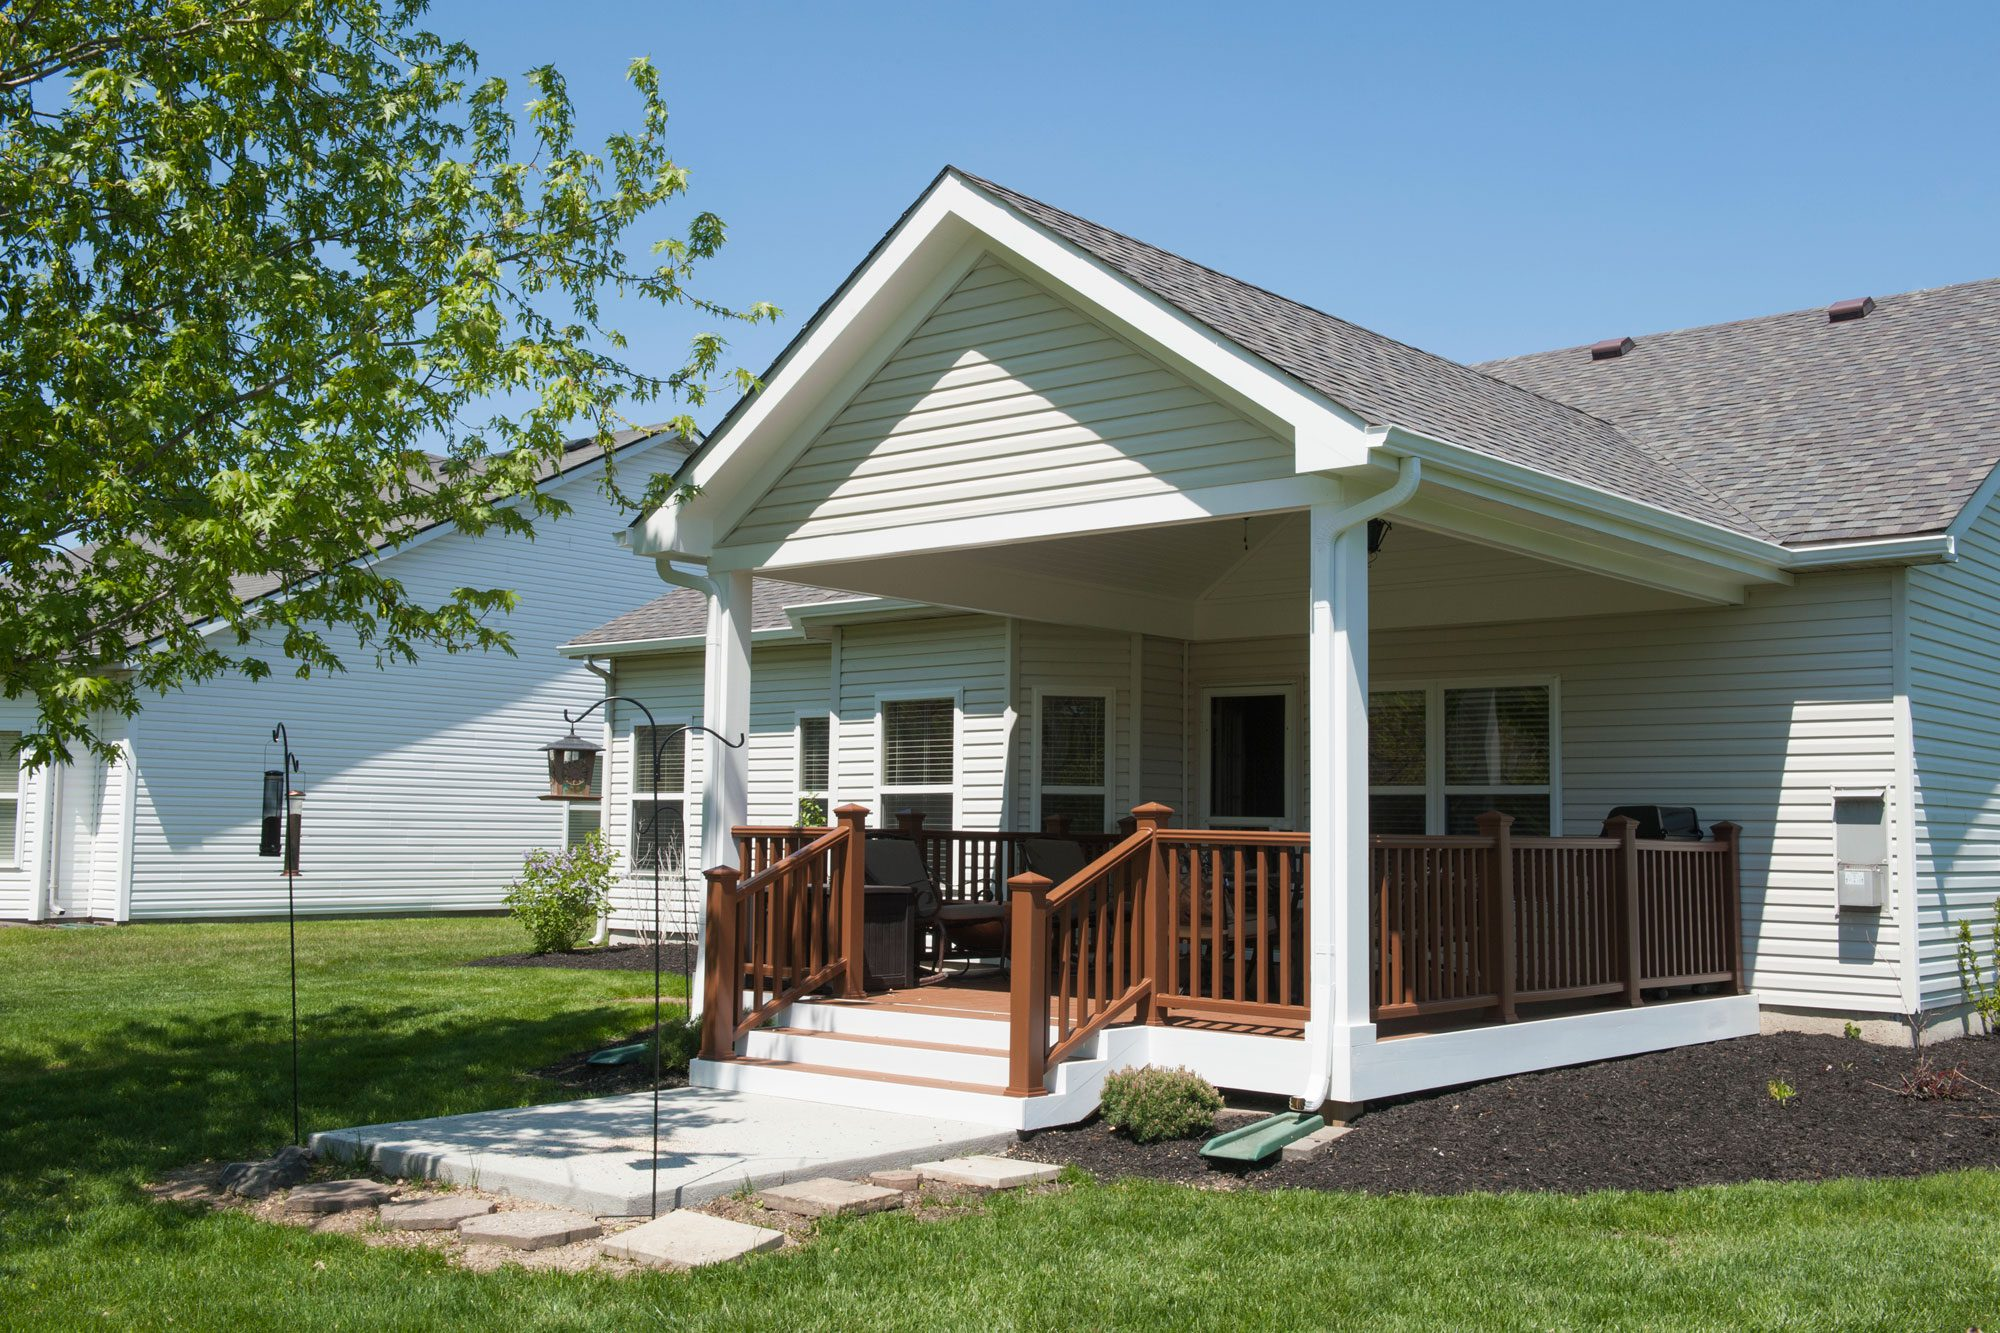 Covered Porch Addition Extends The Indoors Outdoors